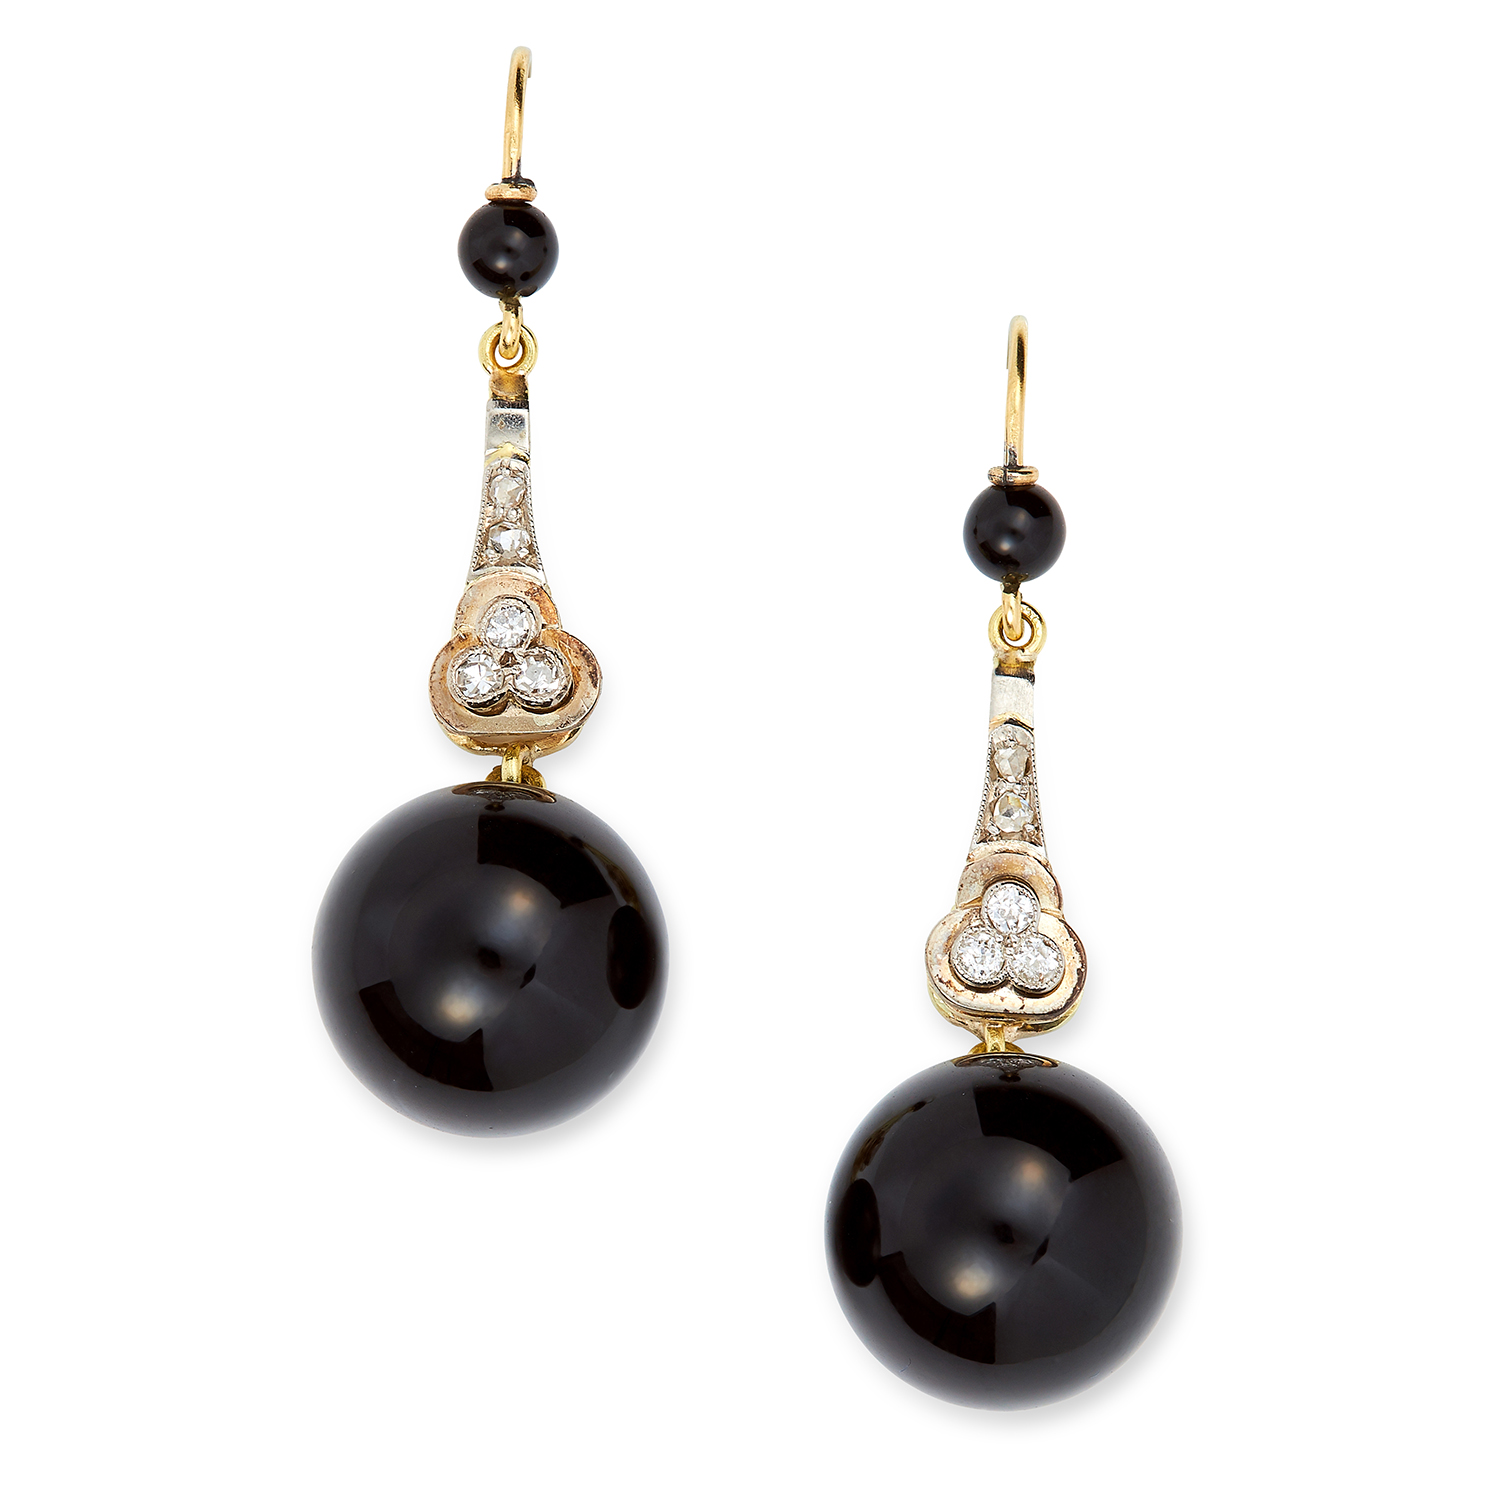 Los 56 - ART DECO ONYX AND DIAMOND EARRINGS set with rose and old cut diamonds, suspending onyx beads, 4.7cm,